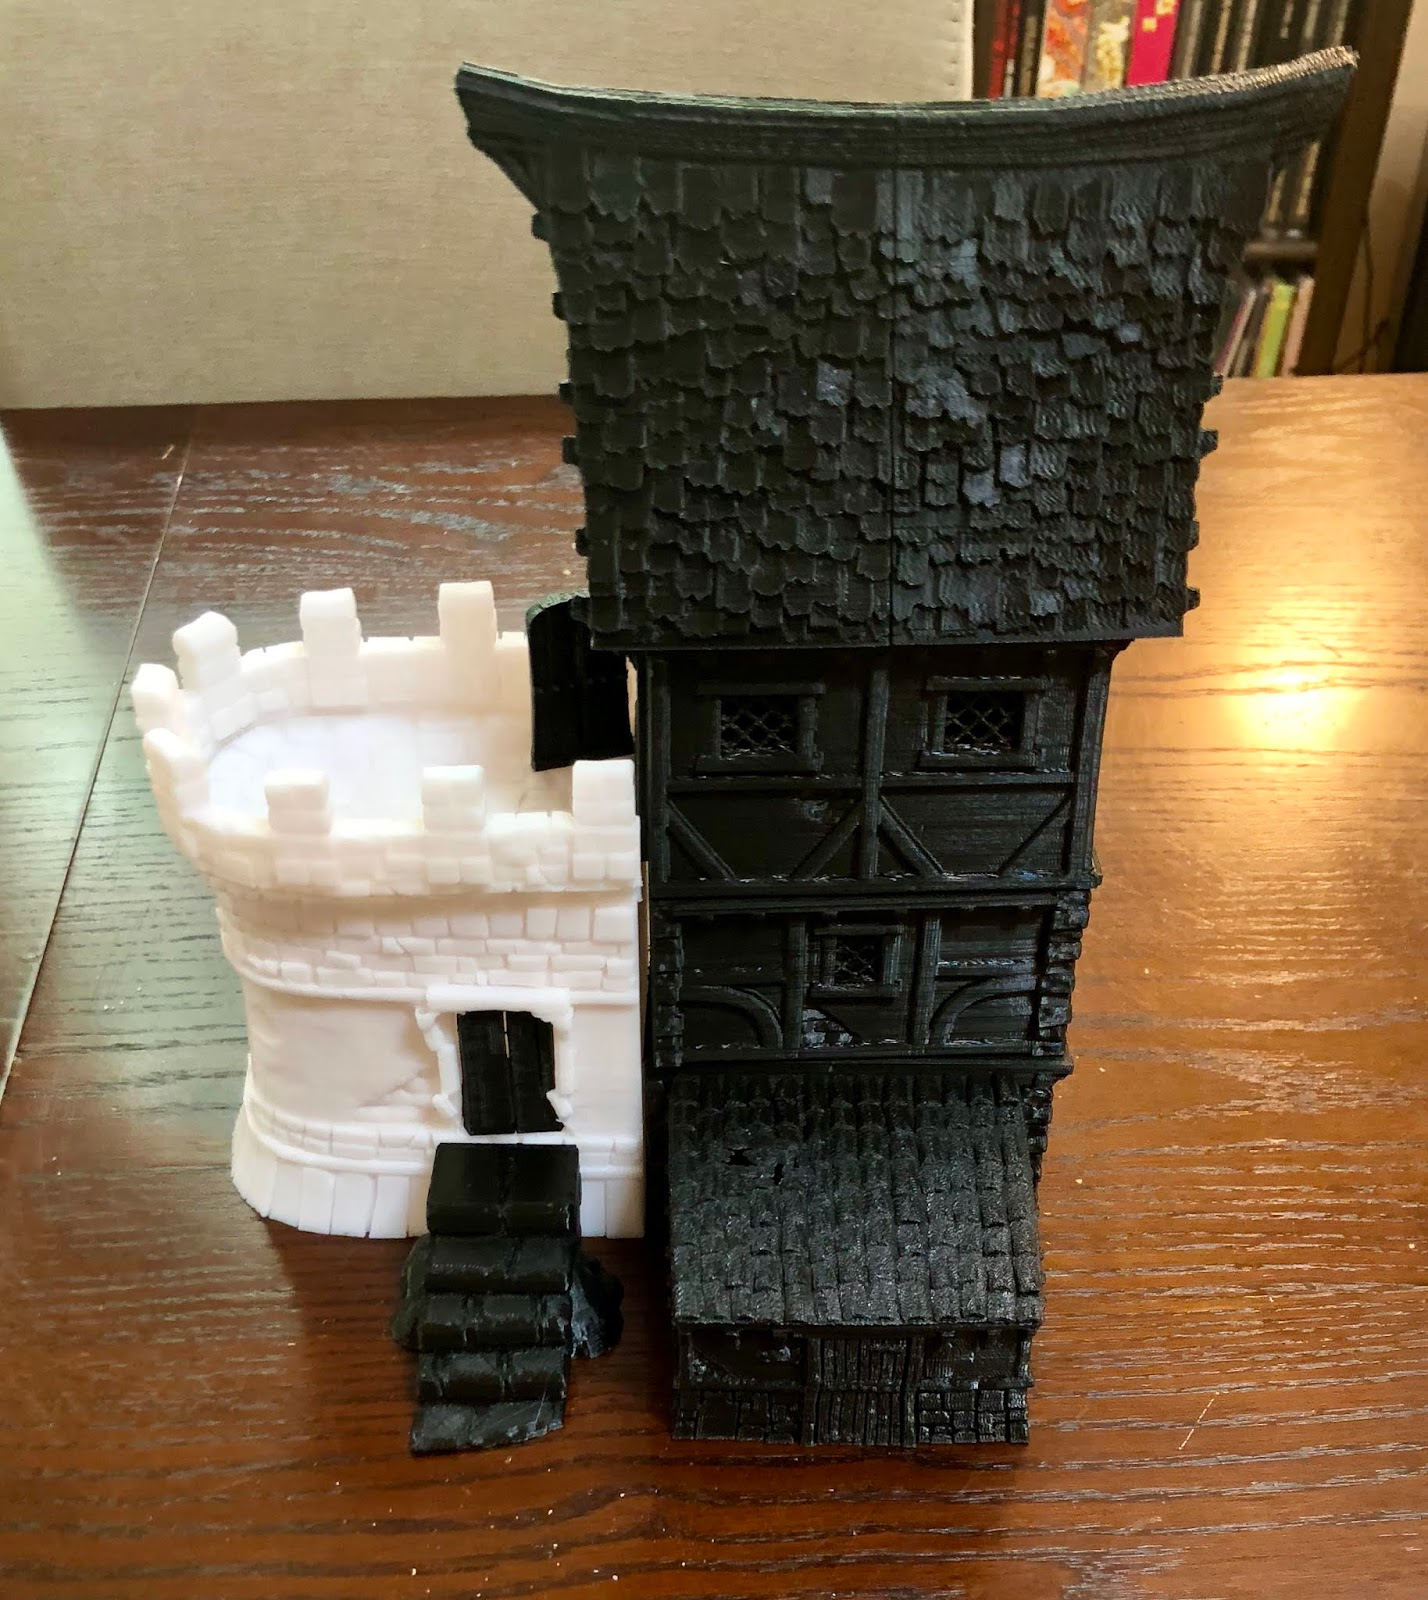 3D Printing: My First Winterdale Building